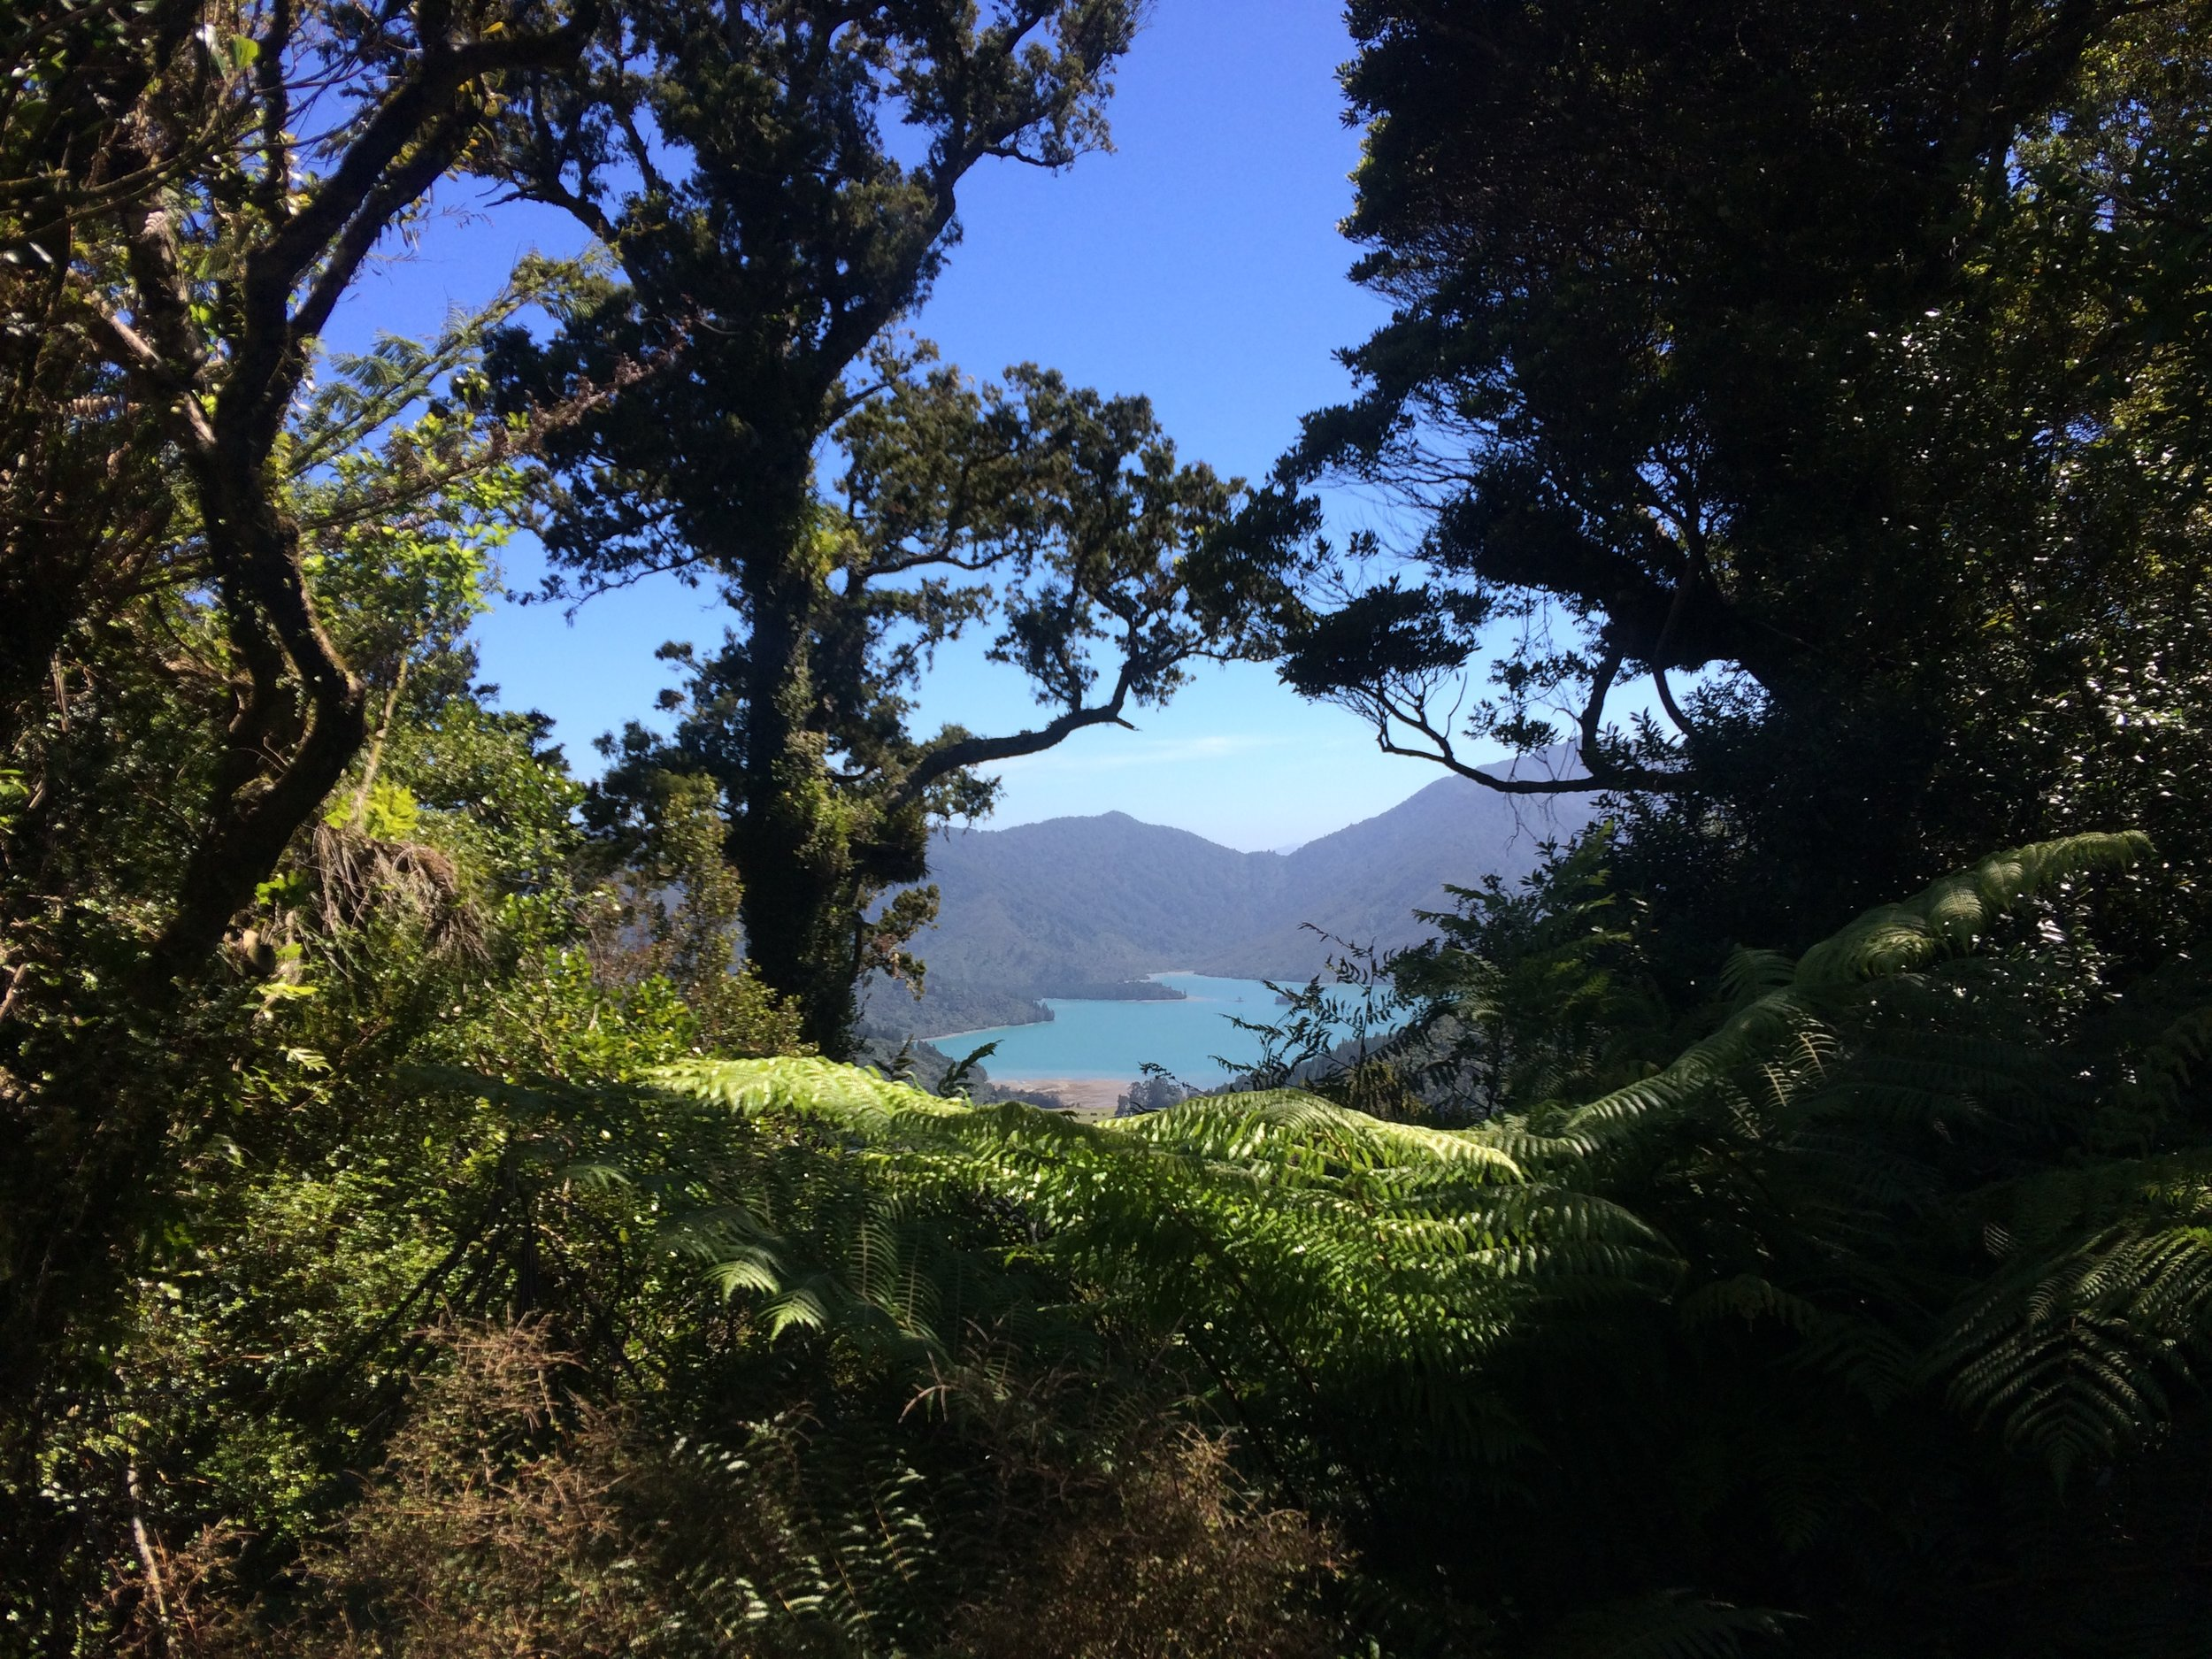 The view of Nydia Bay from the first saddle - Spectacular.